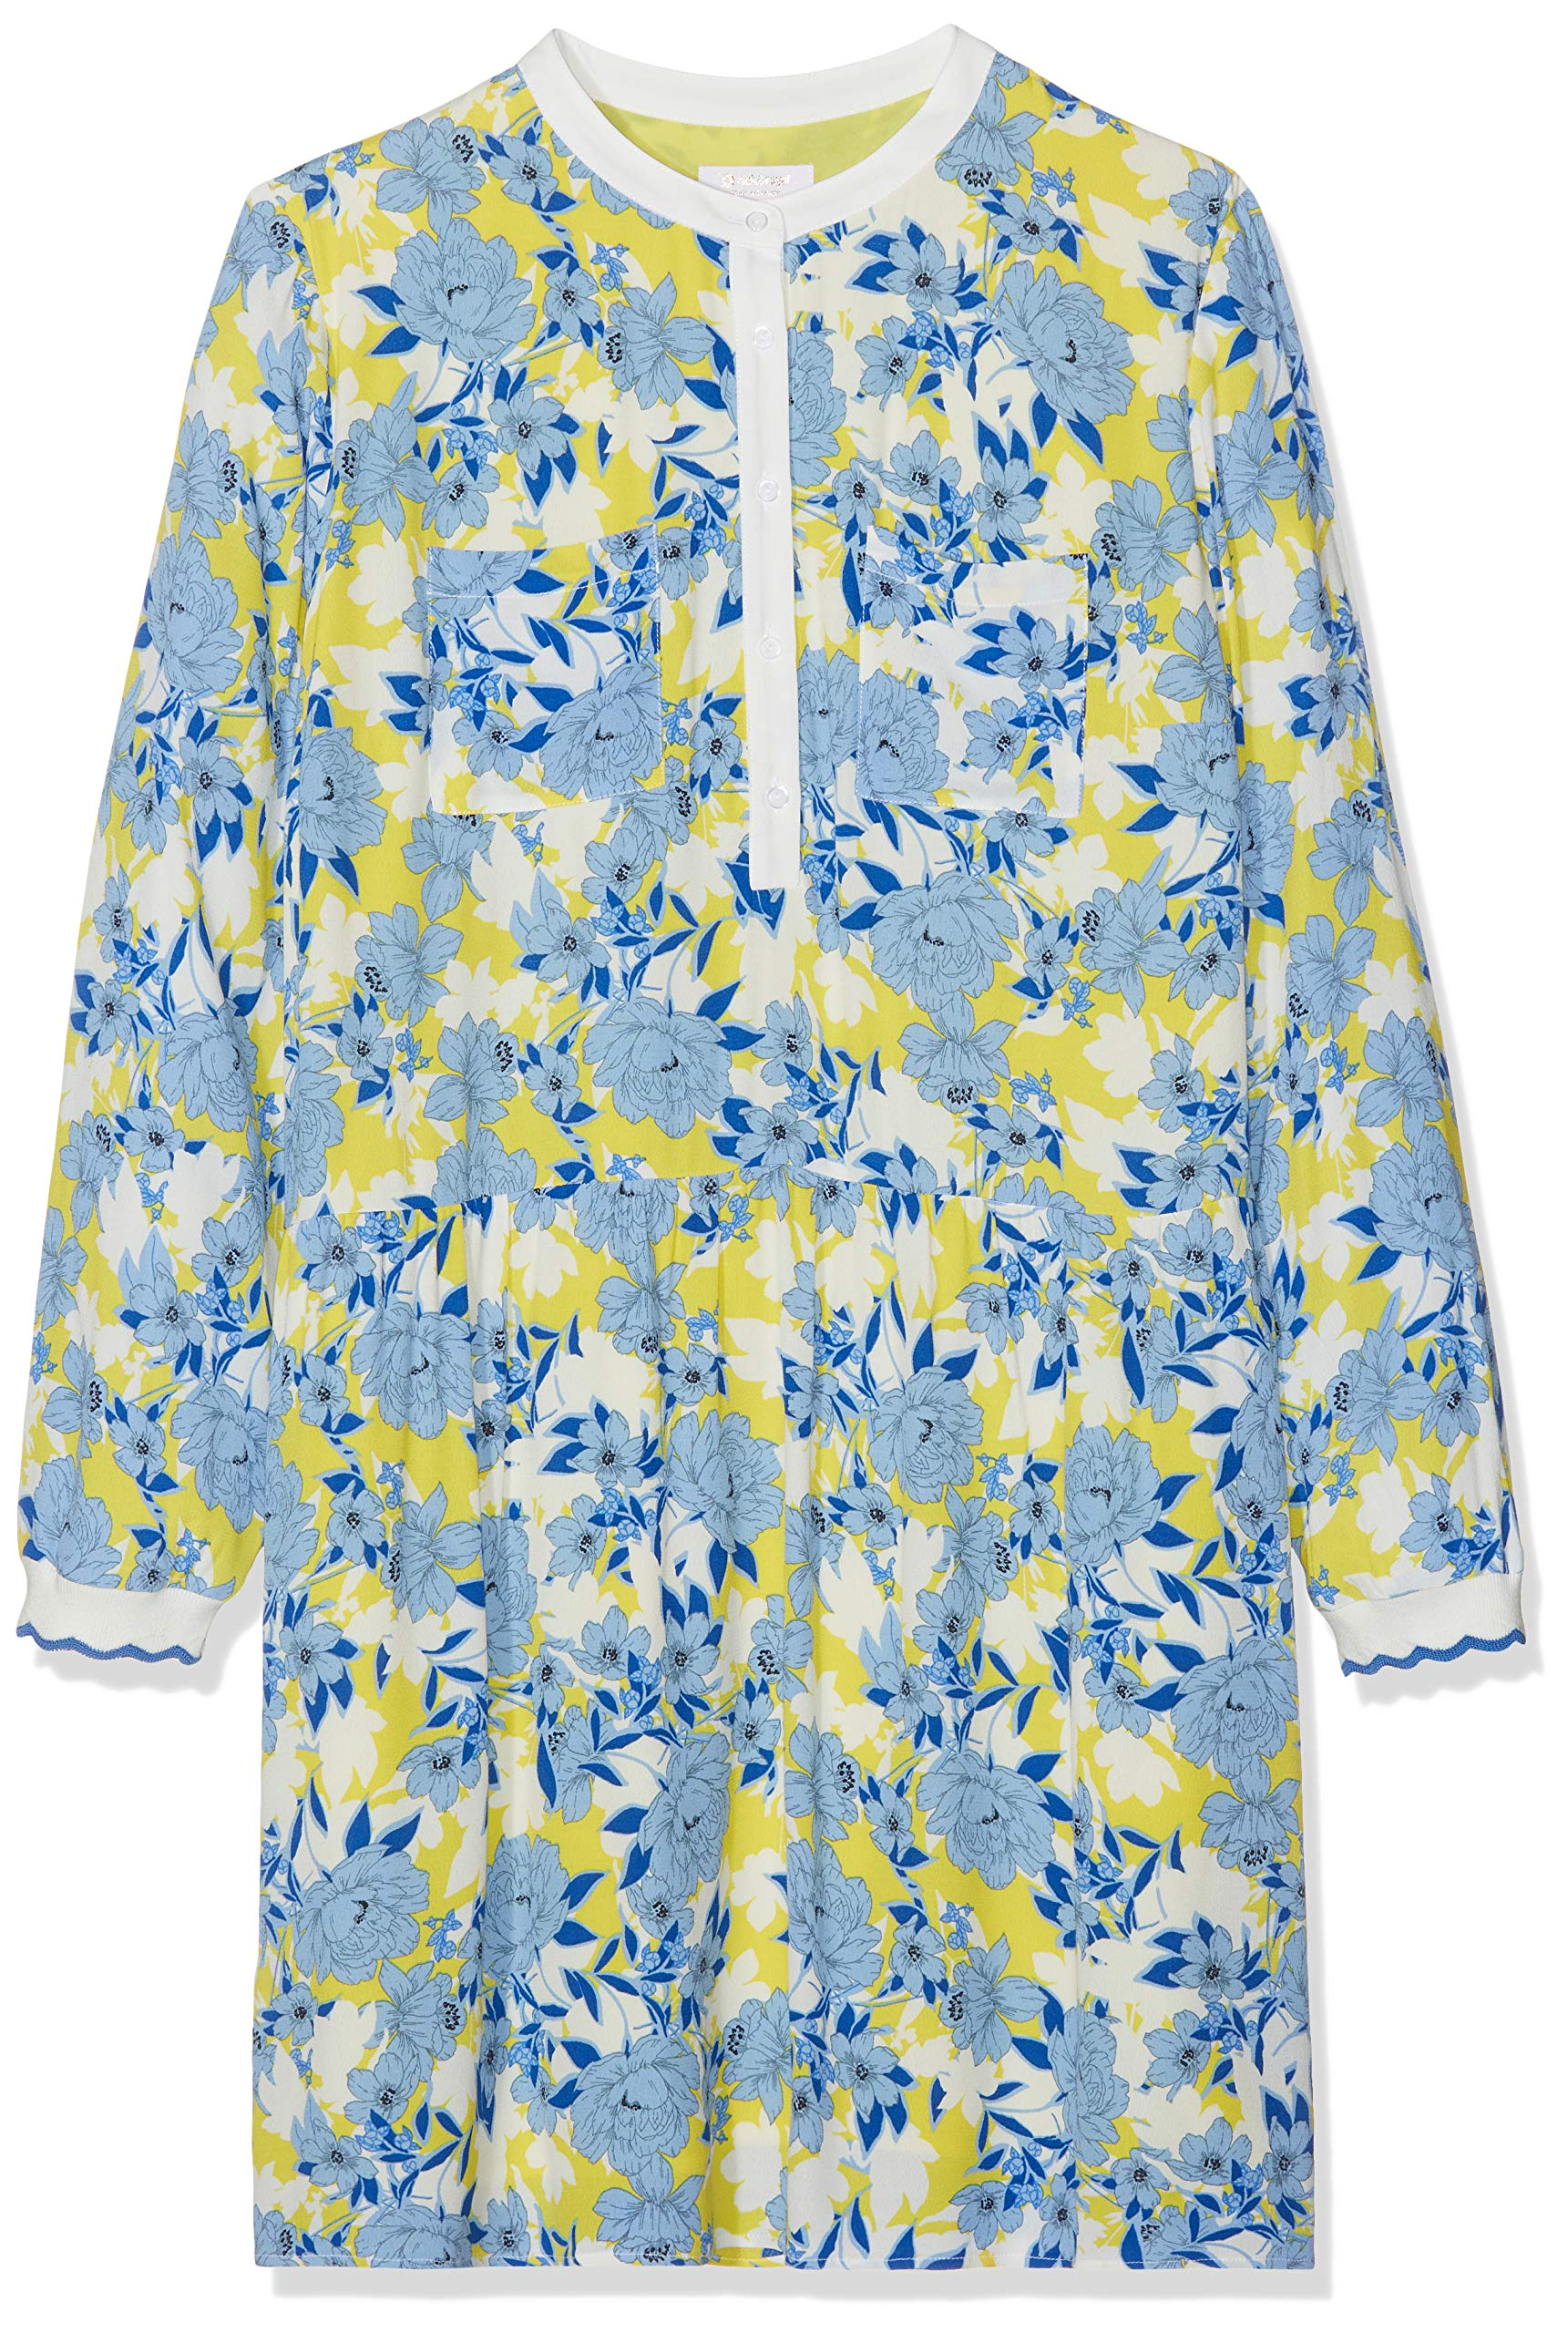 RobeJaunelemon Dress amp;royal Rich Print Fabricant36Femme With 31338taille OZPXuTkwi